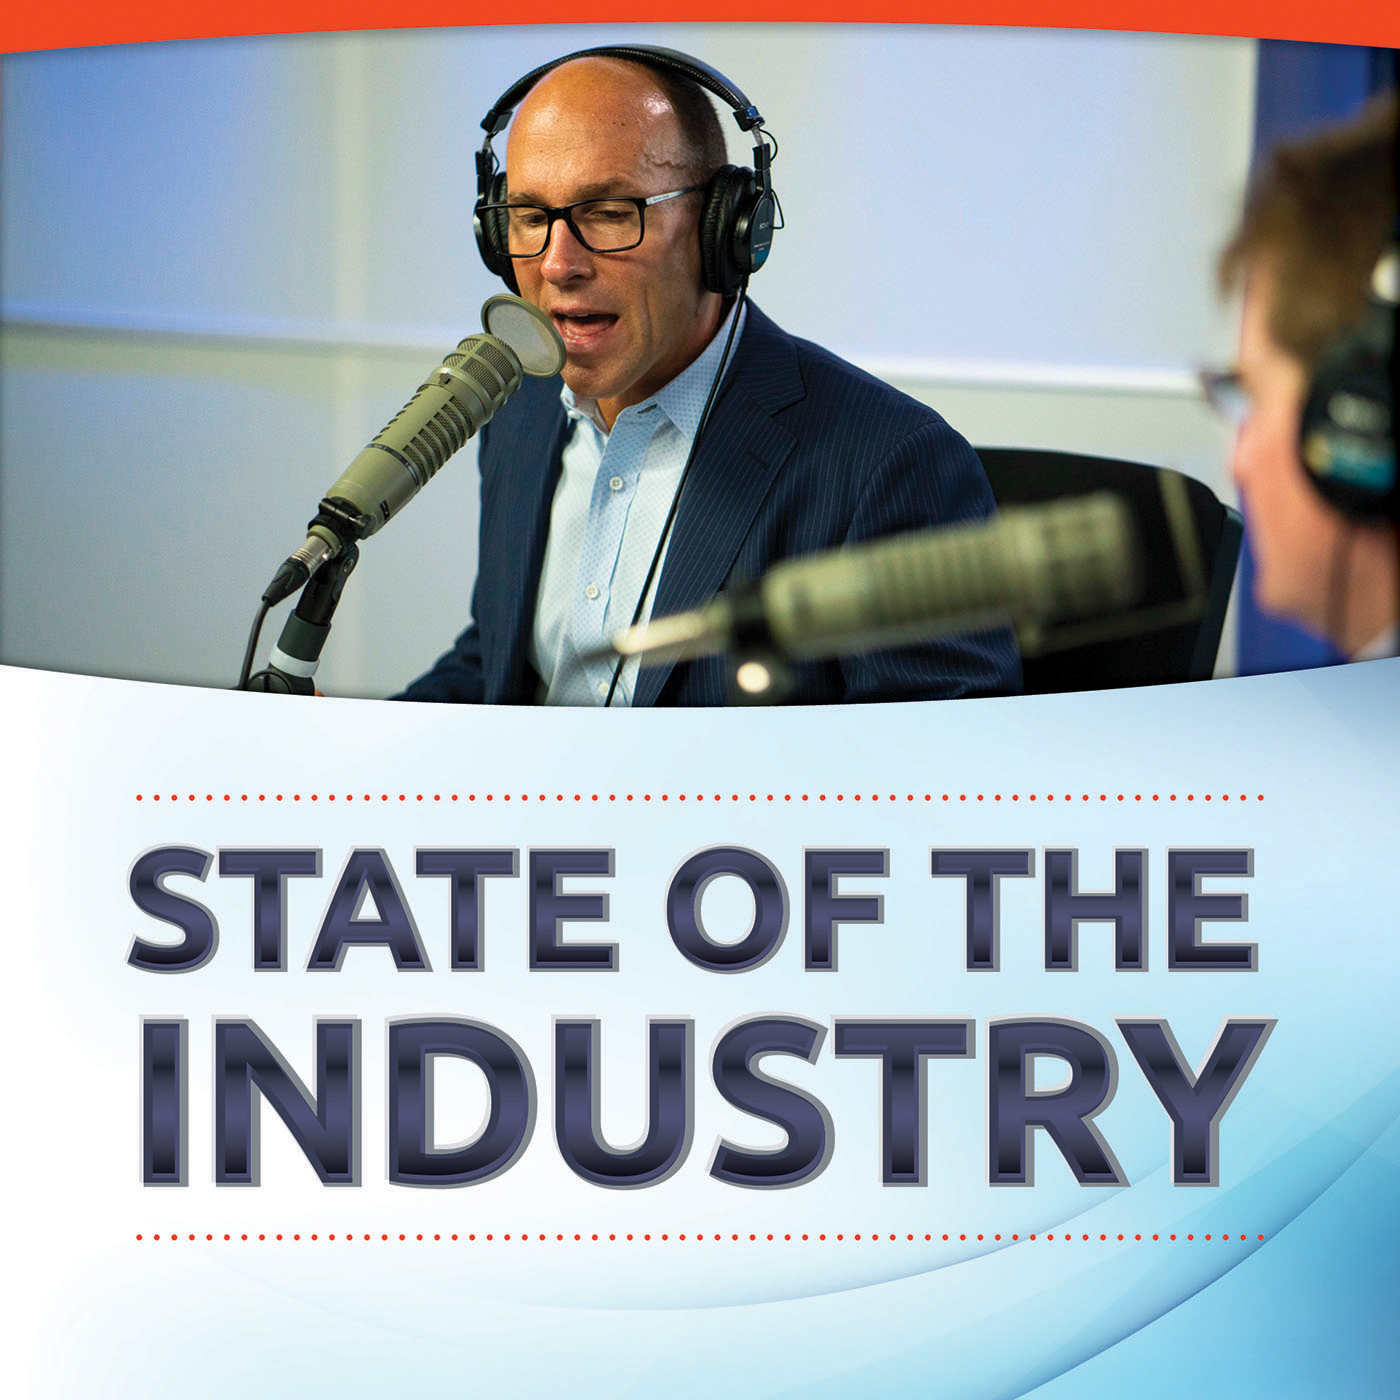 Allworth Financial's State of the Industry